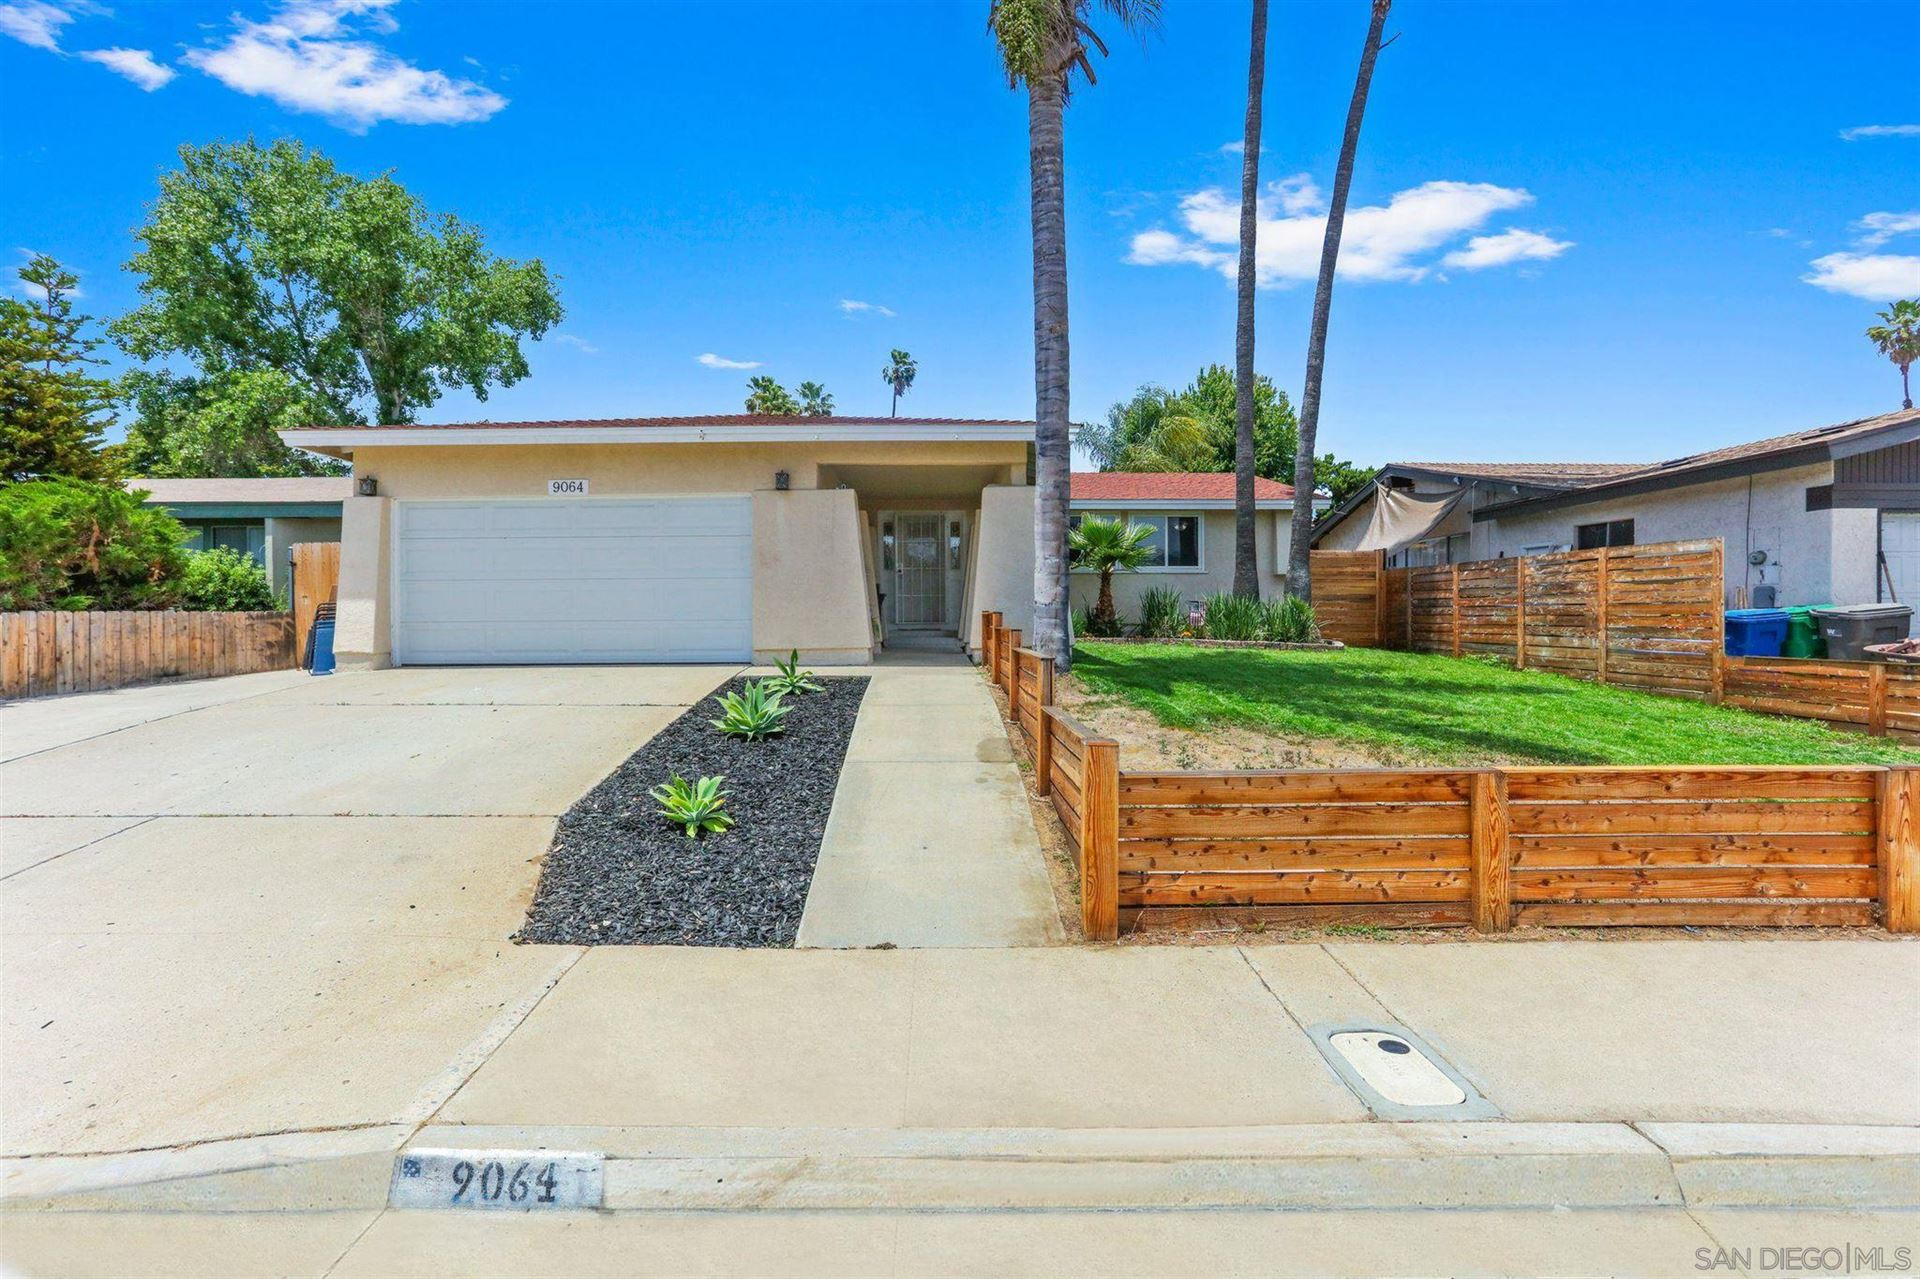 Photo of 9064 Inverness Rd, Santee, CA 92071 (MLS # 210016059)